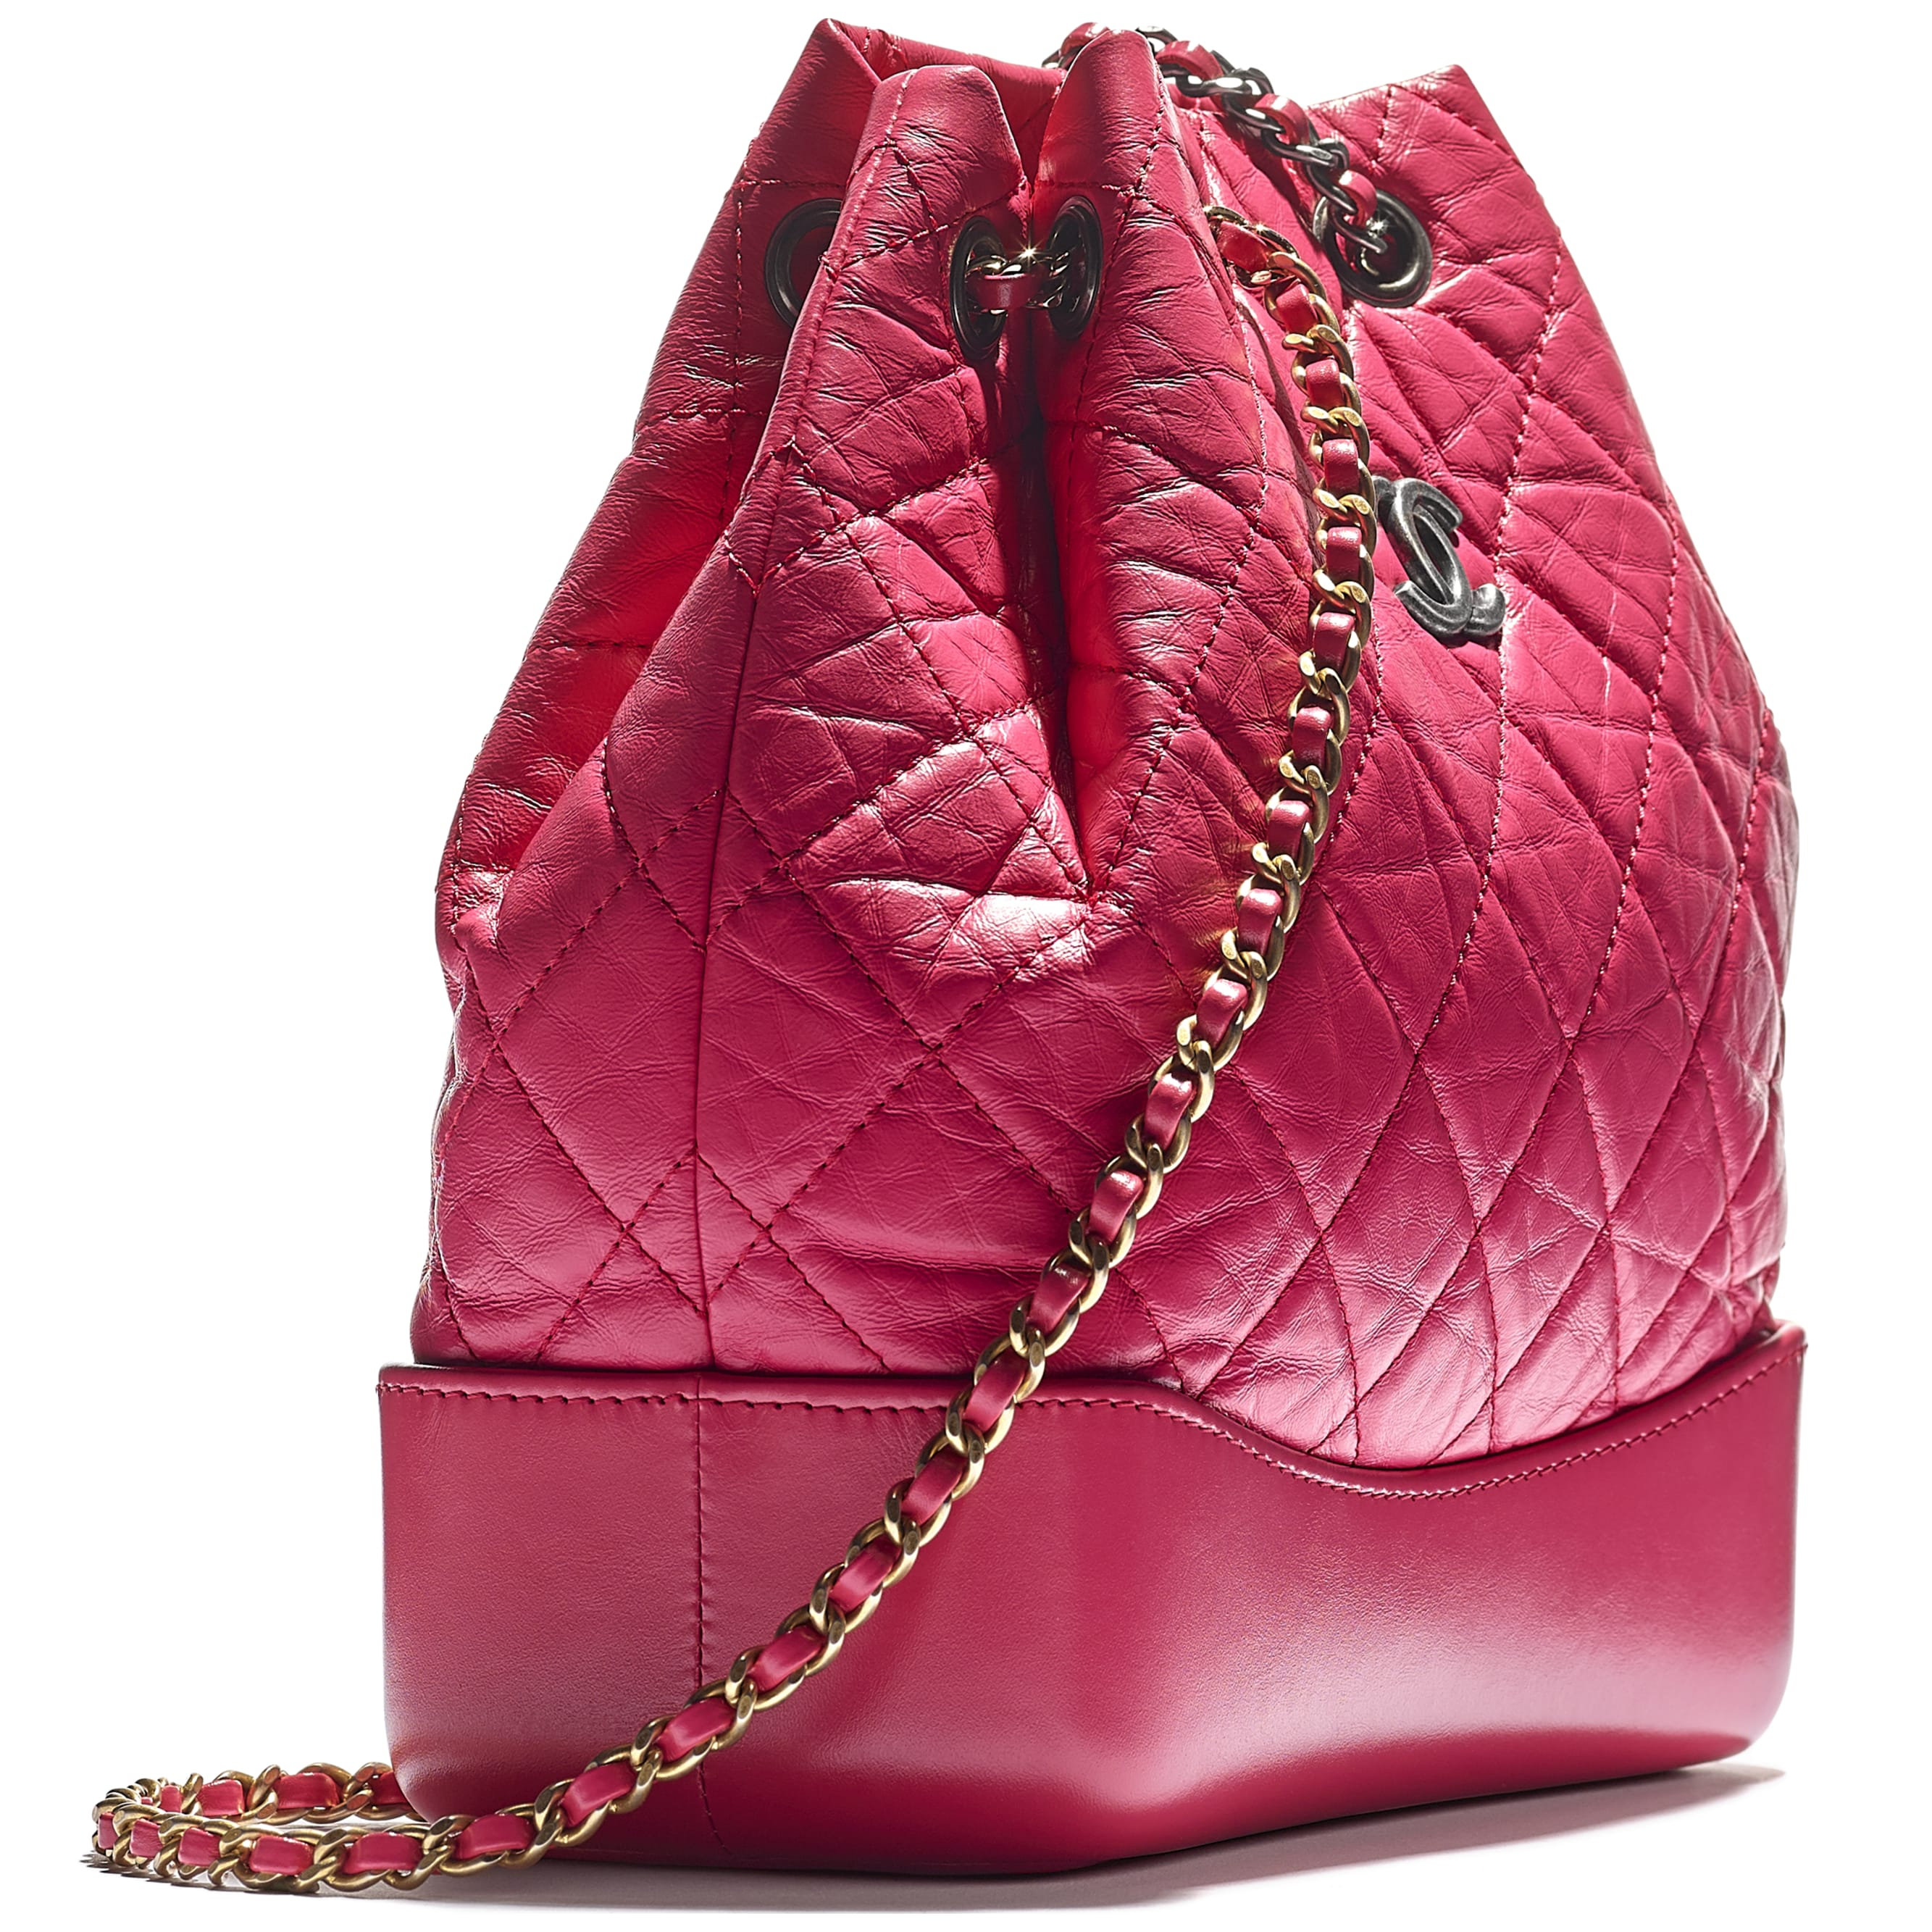 CHANEL'S GABRIELLE Small Backpack - Pink - Aged Calfskin, Smooth Calfskin, Gold-Tone, Silver-Tone & Ruthenium-Finish Metal - CHANEL - Extra view - see standard sized version